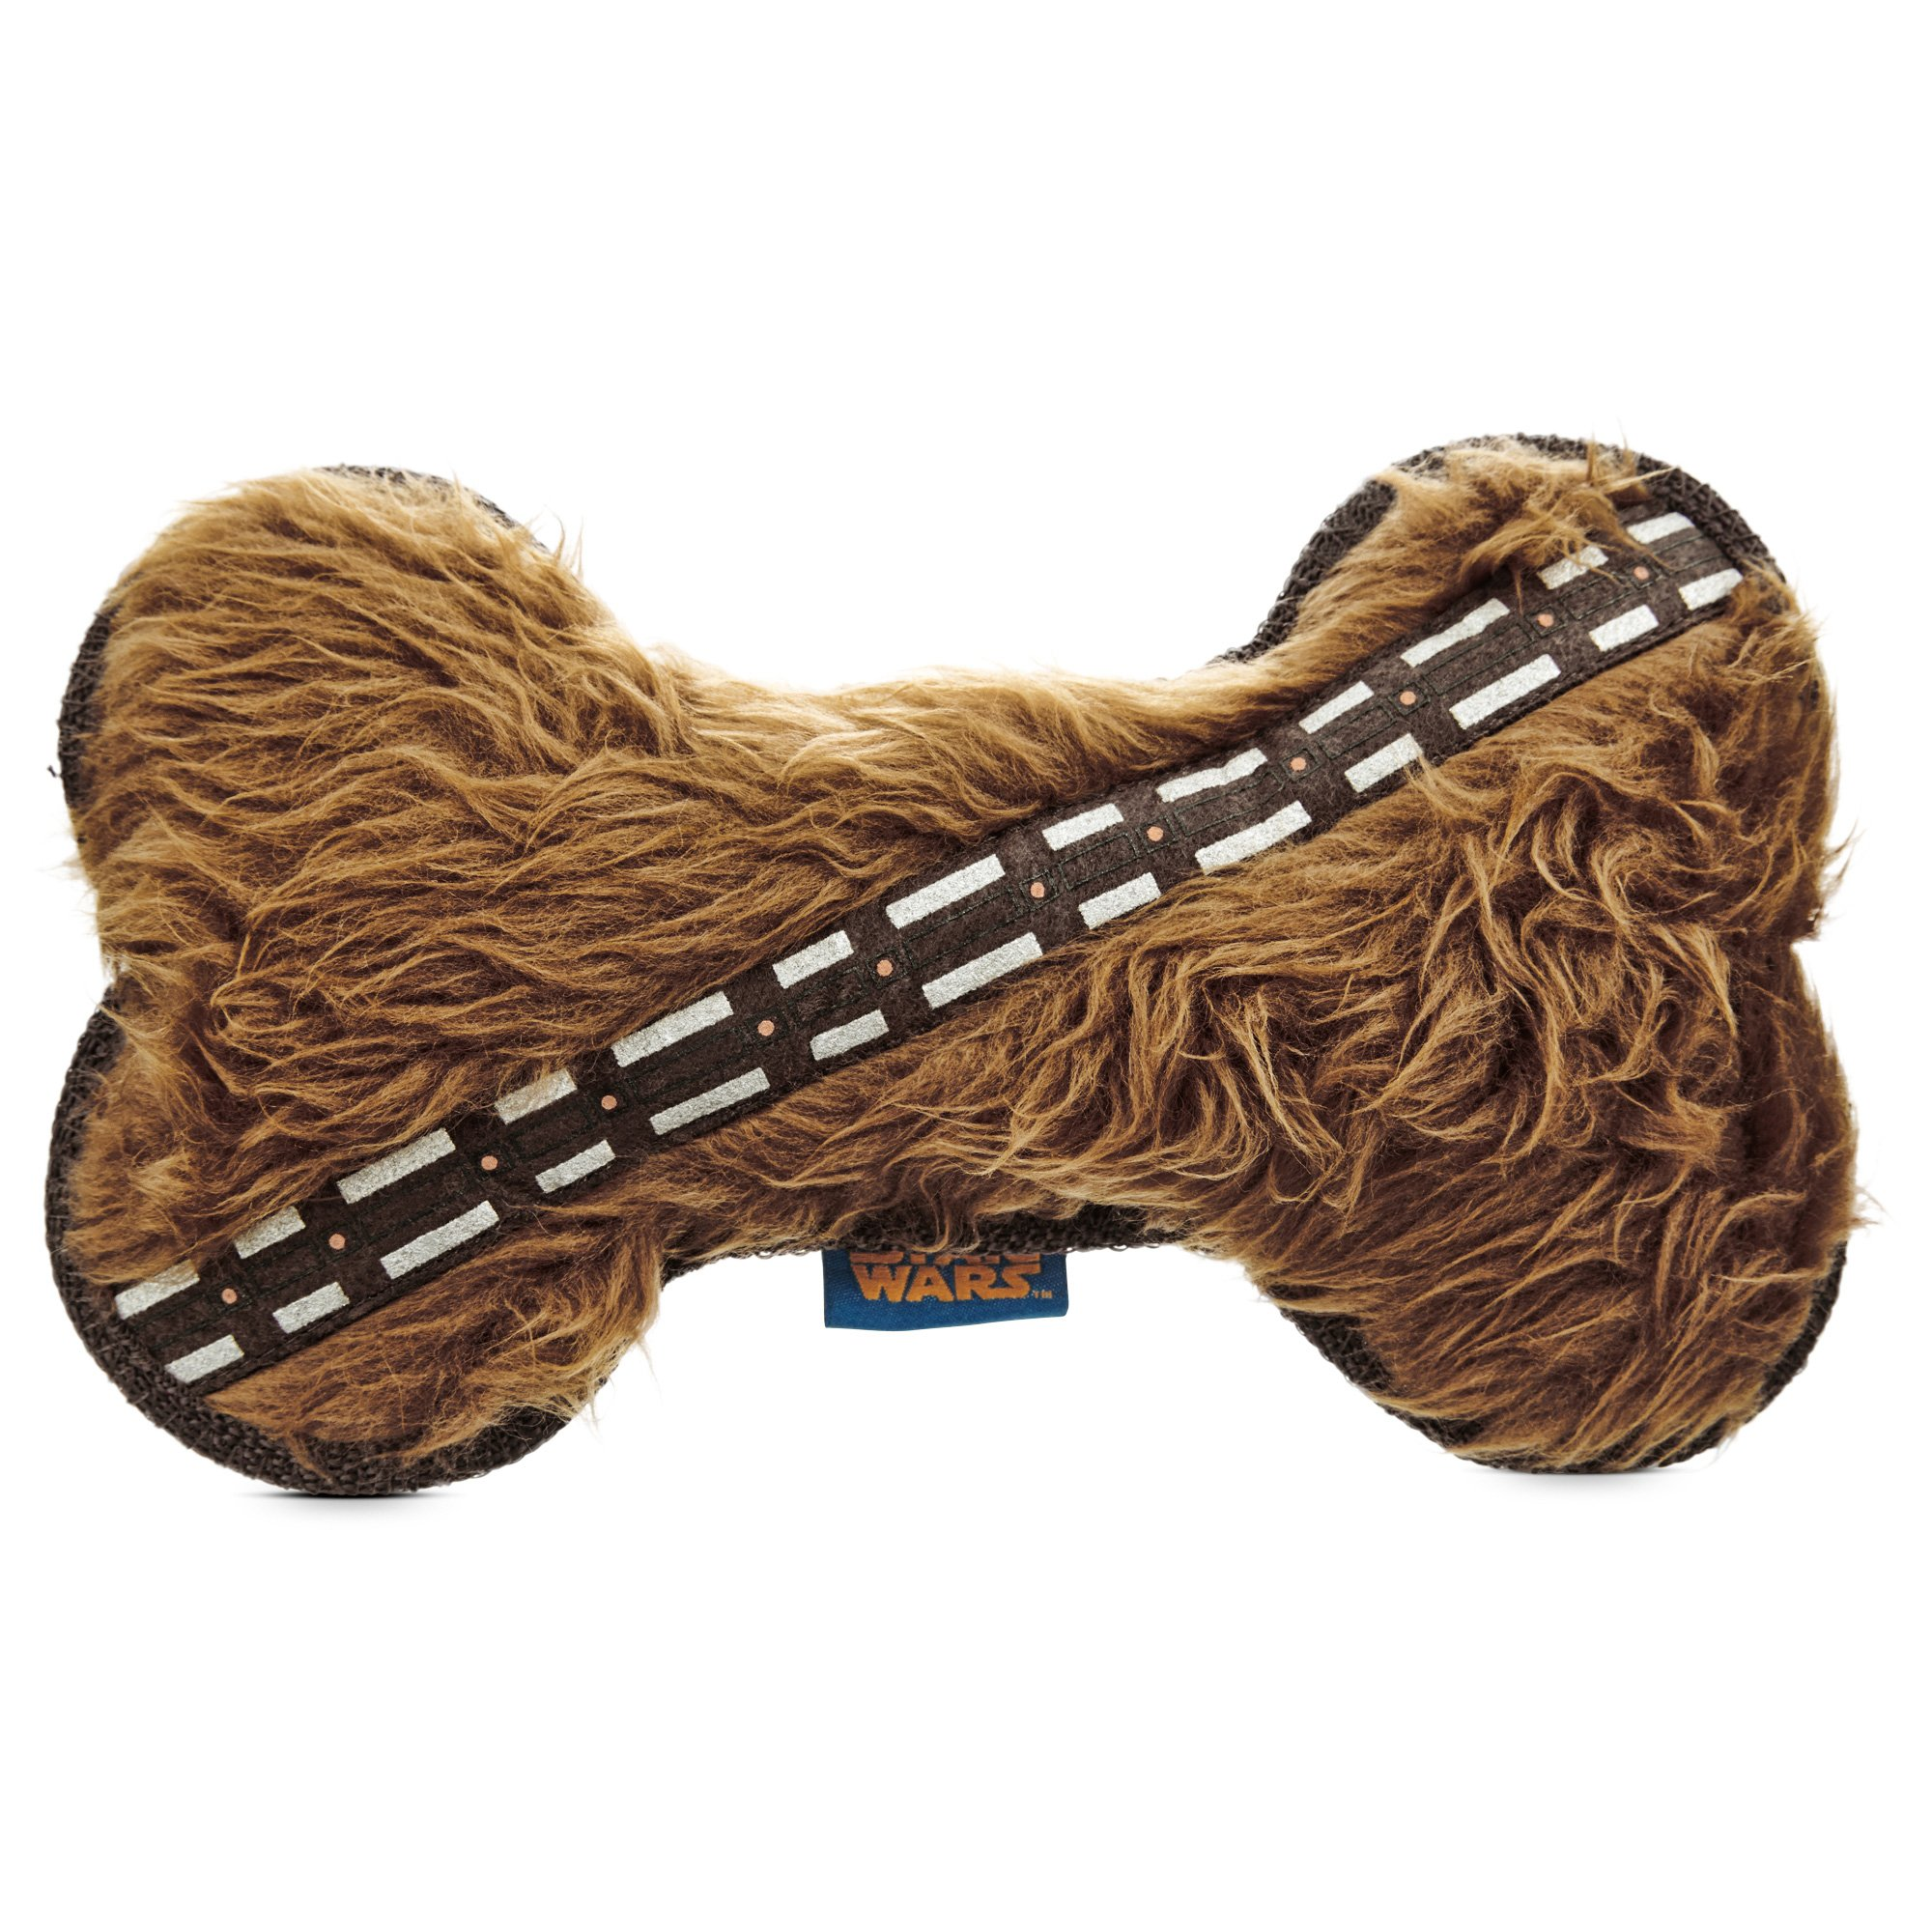 Dog Toys & Puppy Toys: Low Prices - Free Shipping | Chewy